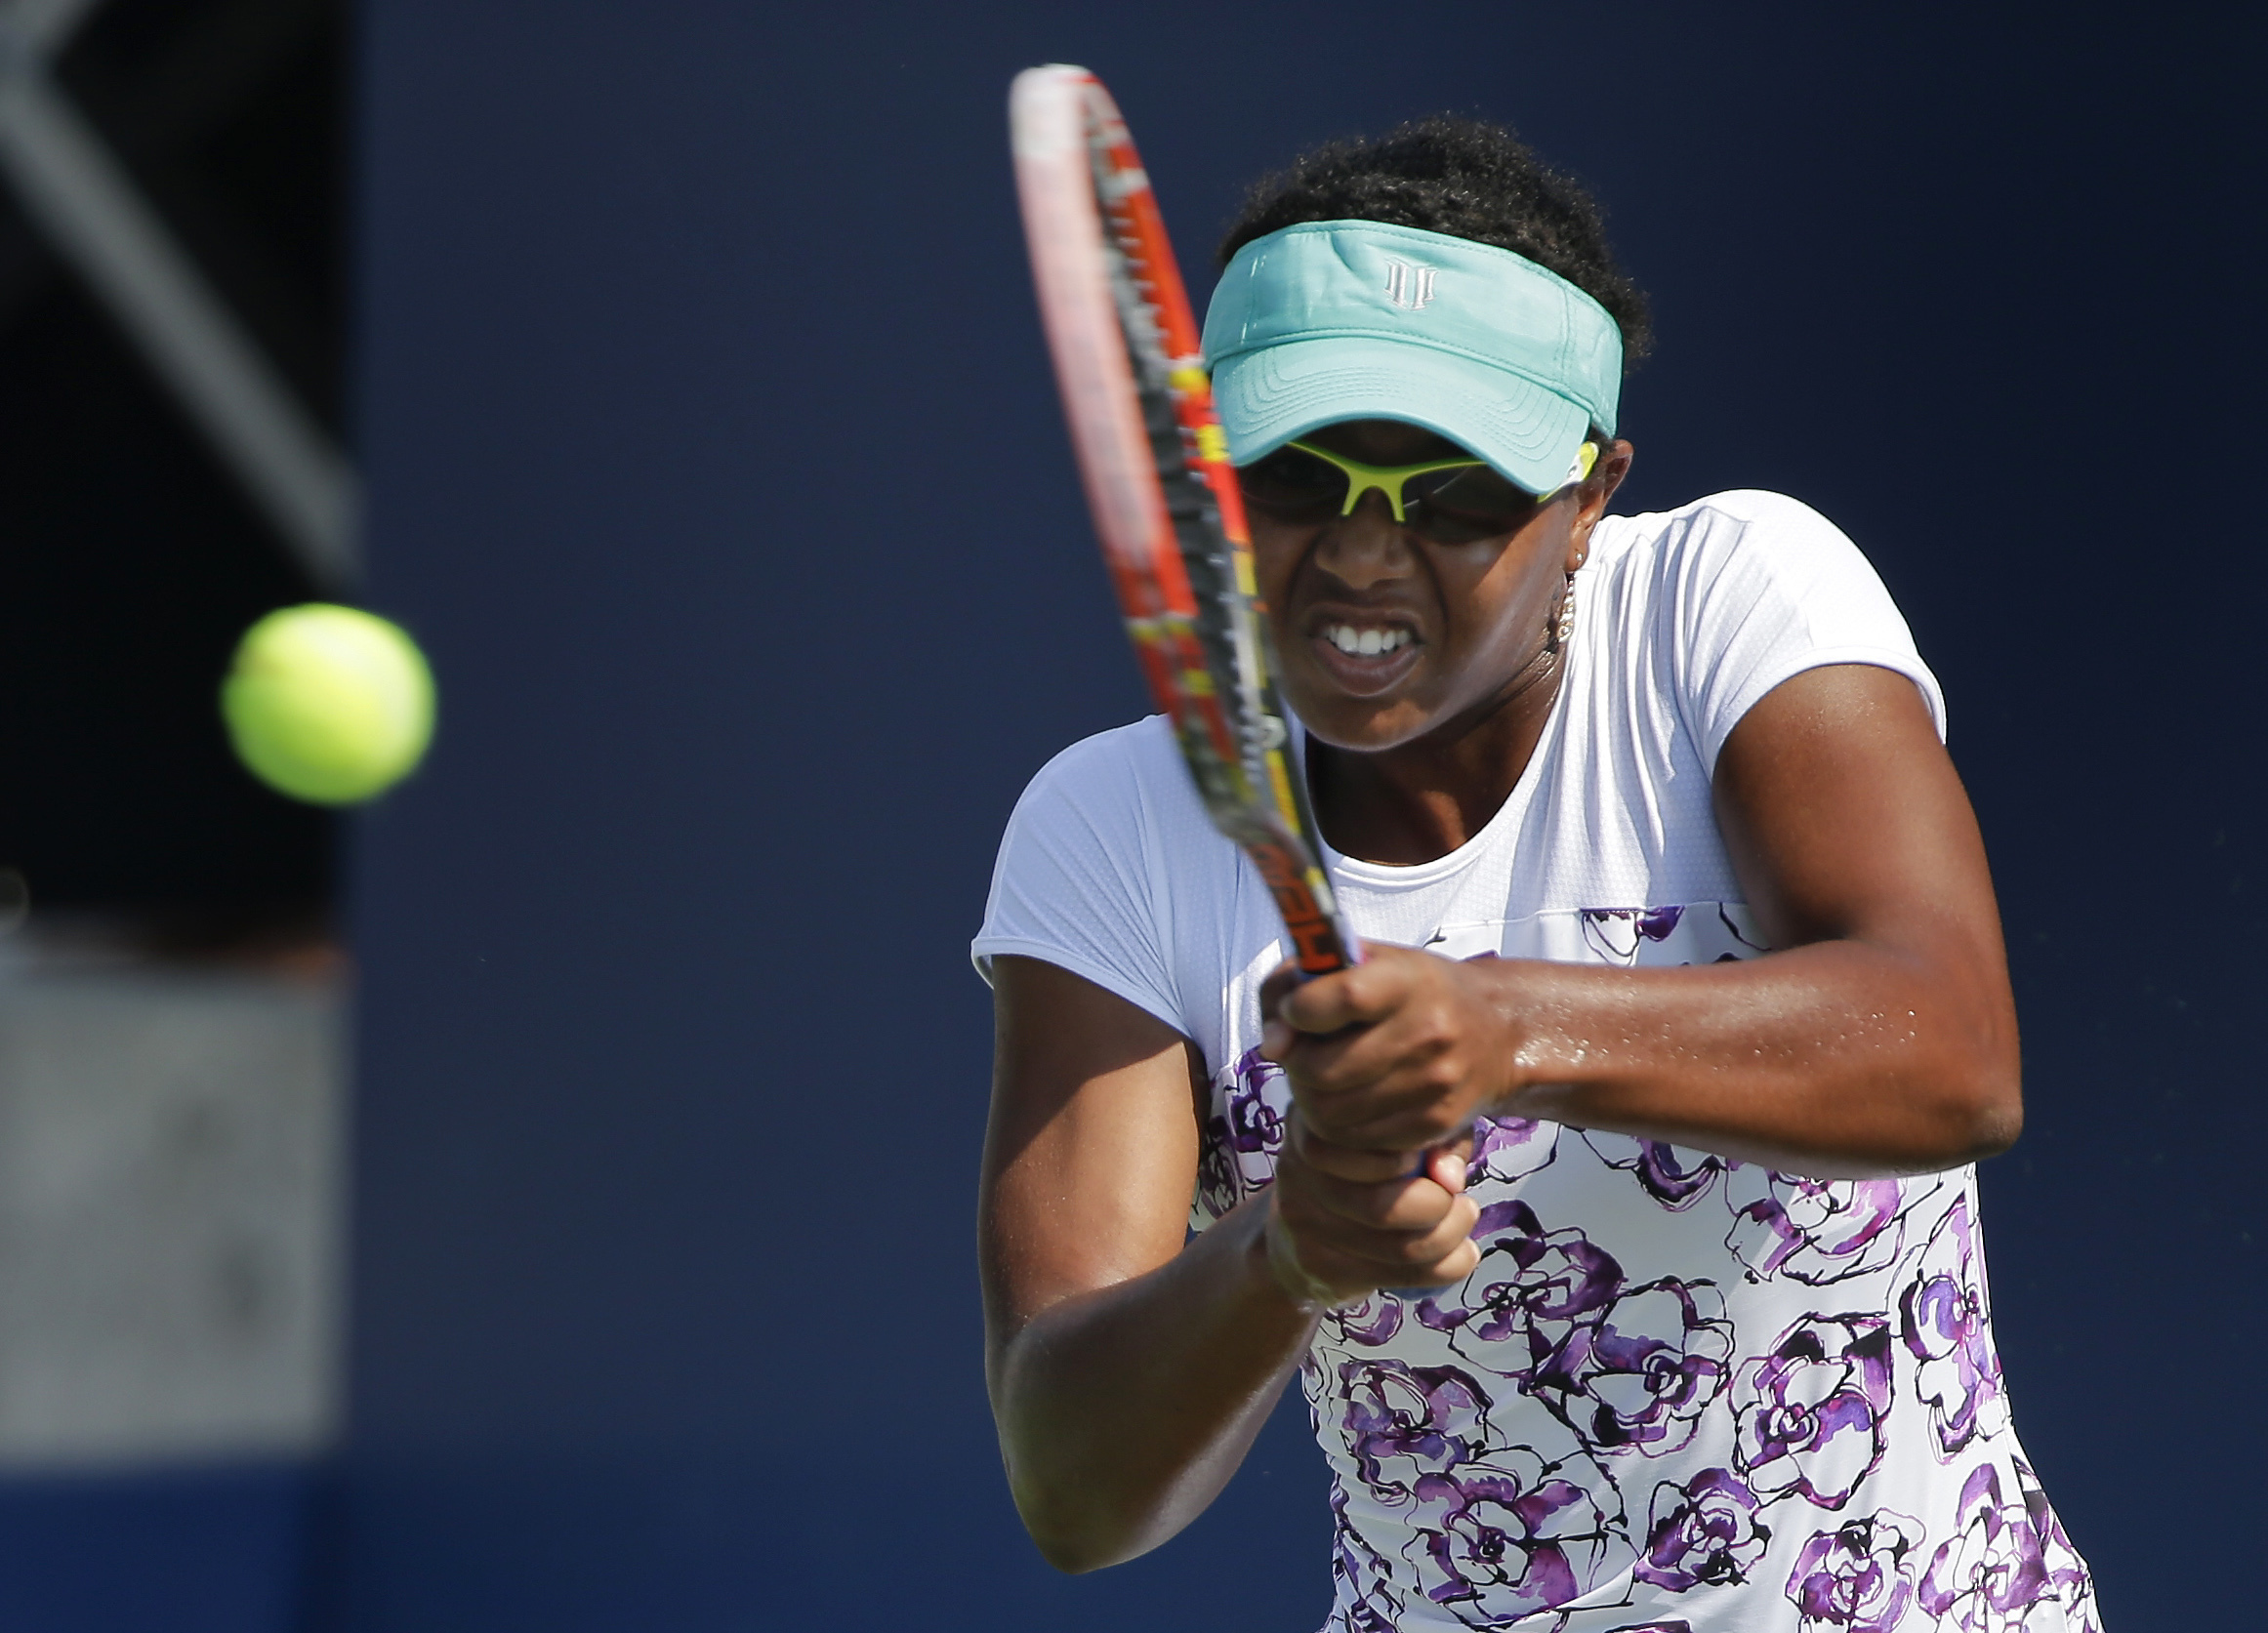 FILE - This is a Tuesday, Aug. 25, 2015  file photo of Vicky Duval, of the United States, returns a shot to Luksika Kumkhum, of Thailand, during the first set of a U.S. Open qualifying tennis match  in New York. Vicky Duval was back at Wimbledon on Monday